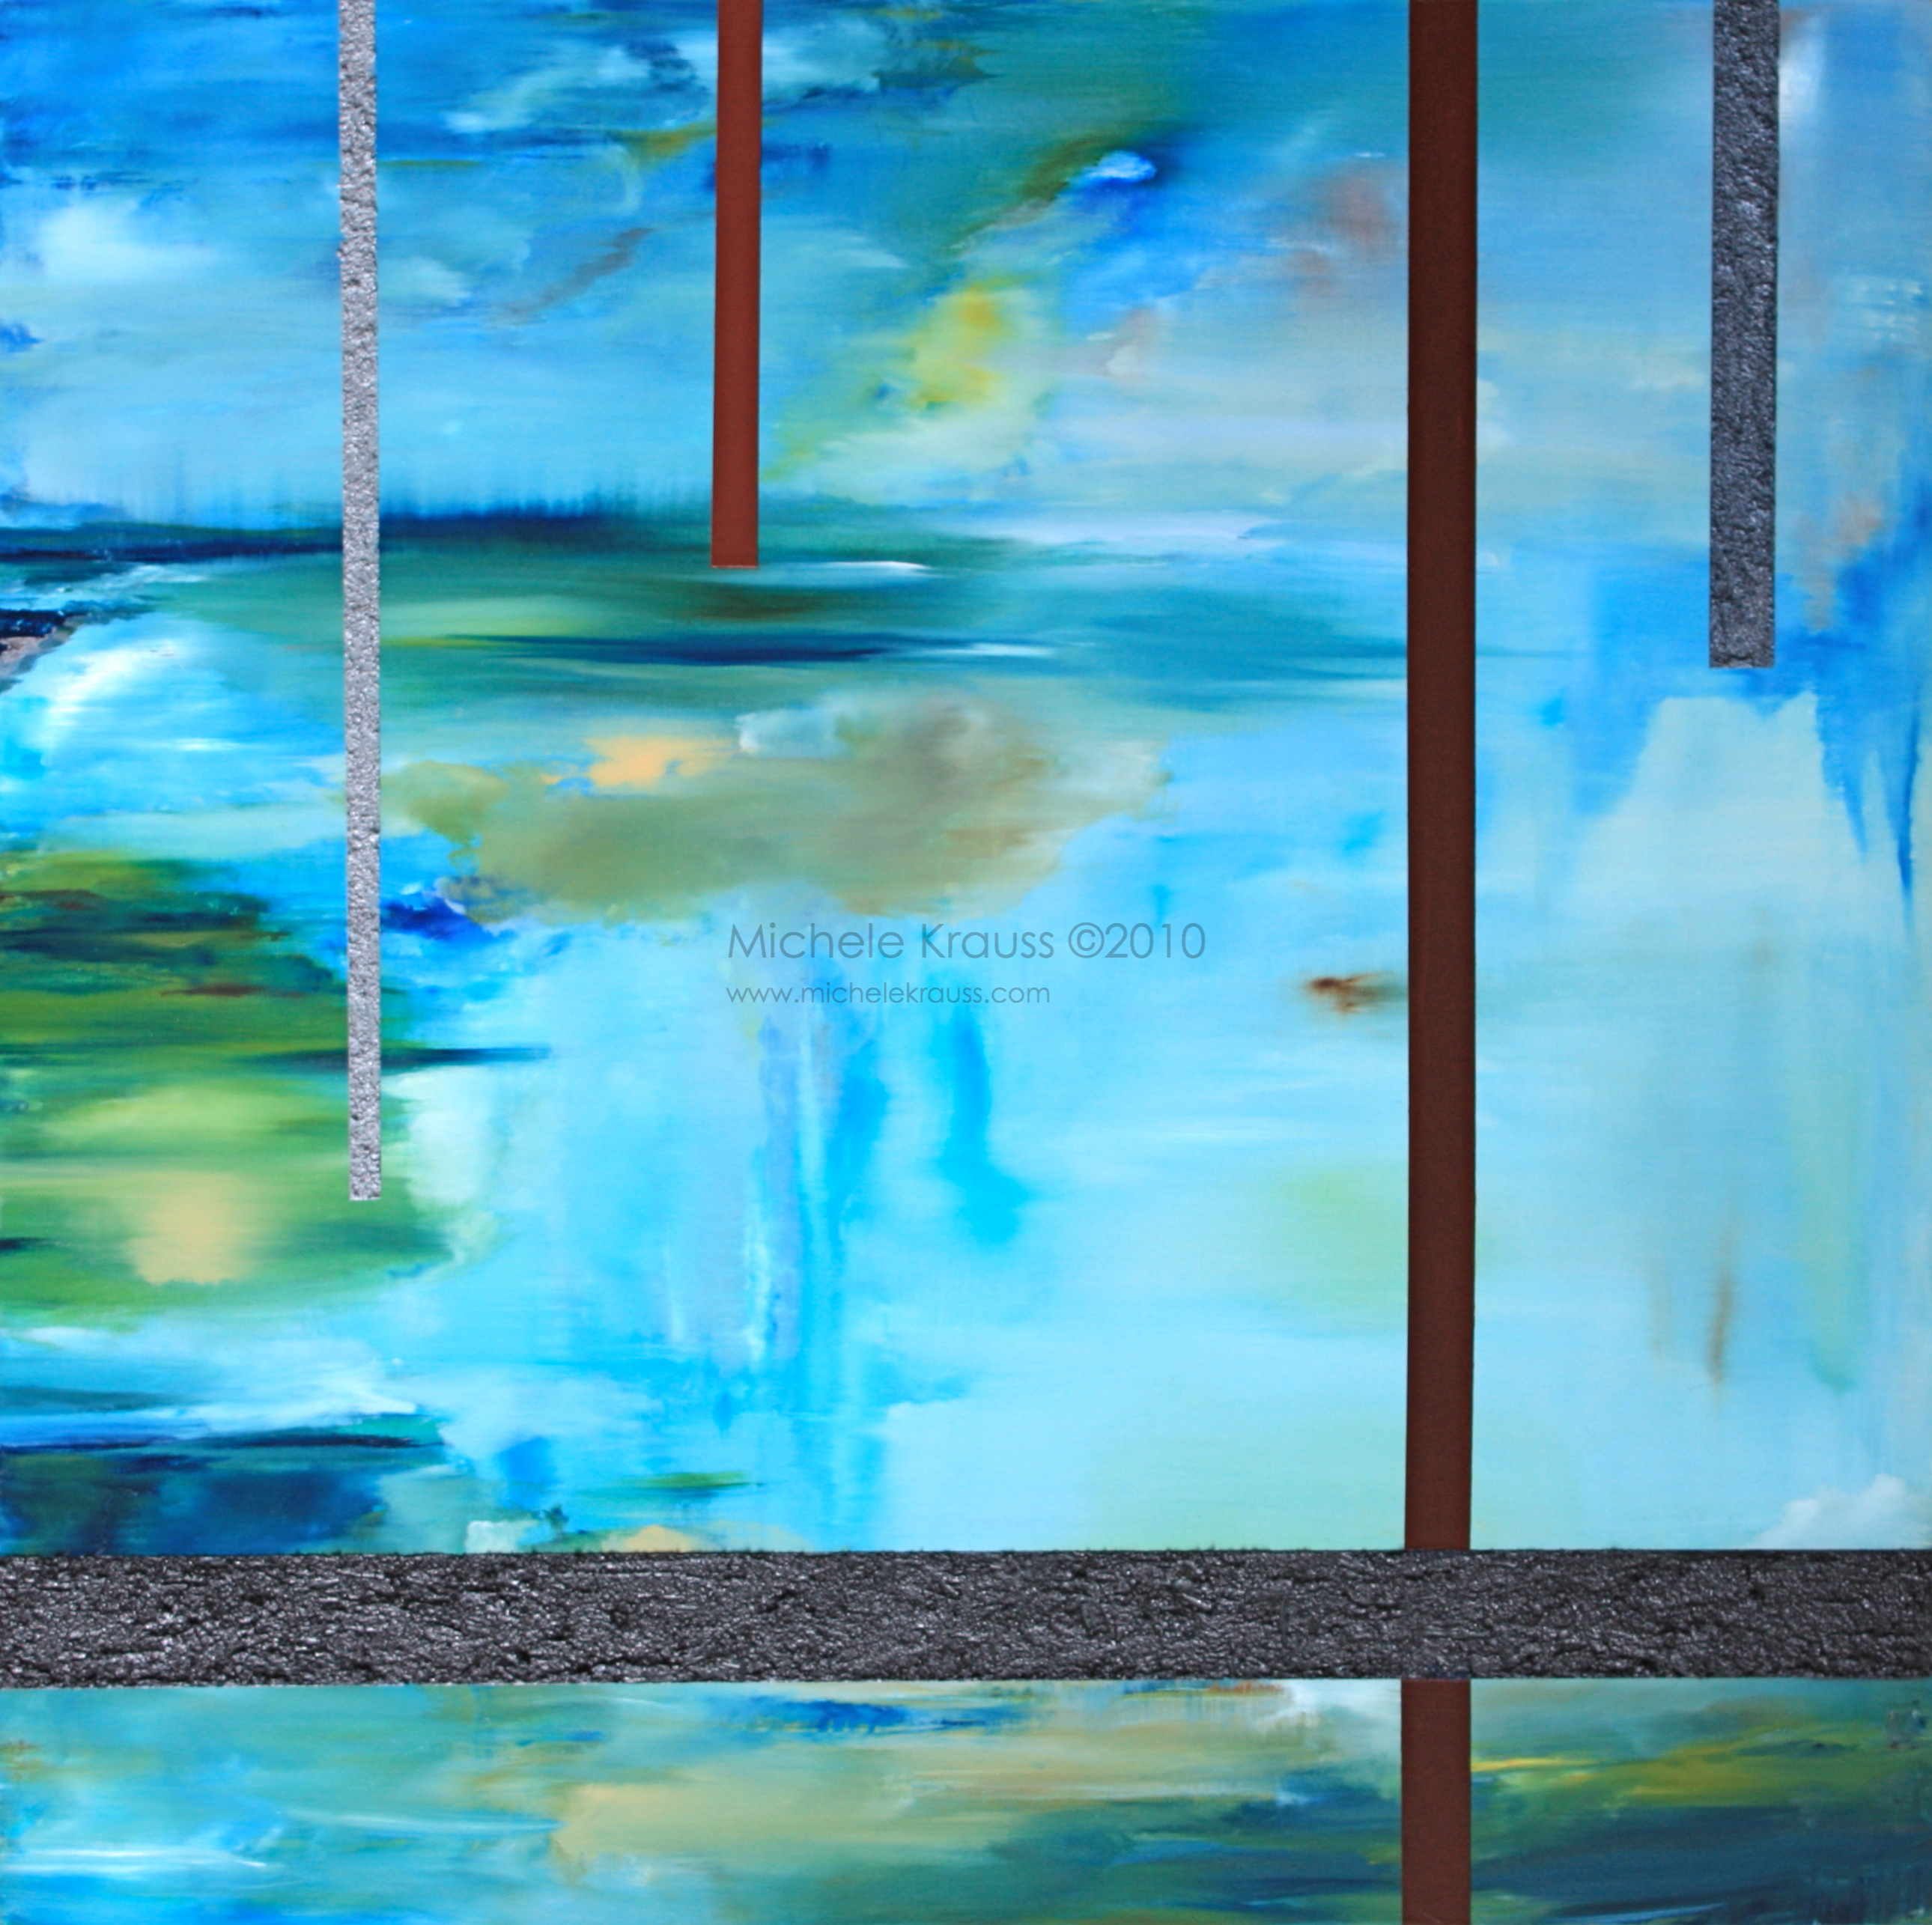 Juxtaposed Blue Reflections